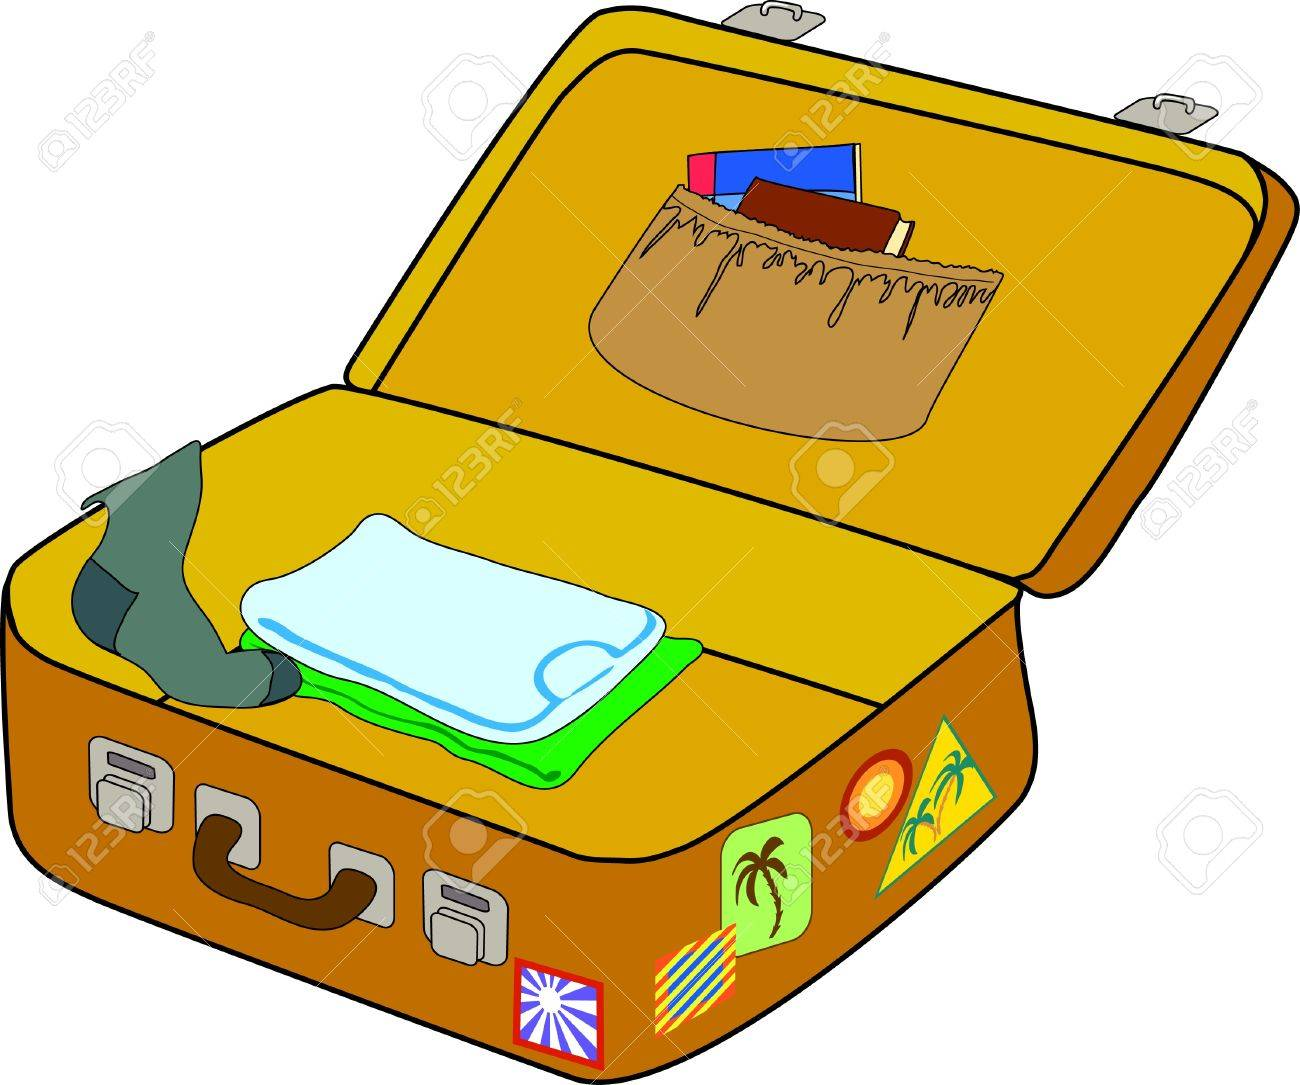 open suitcase drawing at getdrawings com free for personal use rh getdrawings com open empty suitcase clipart Suitcase with Clothes